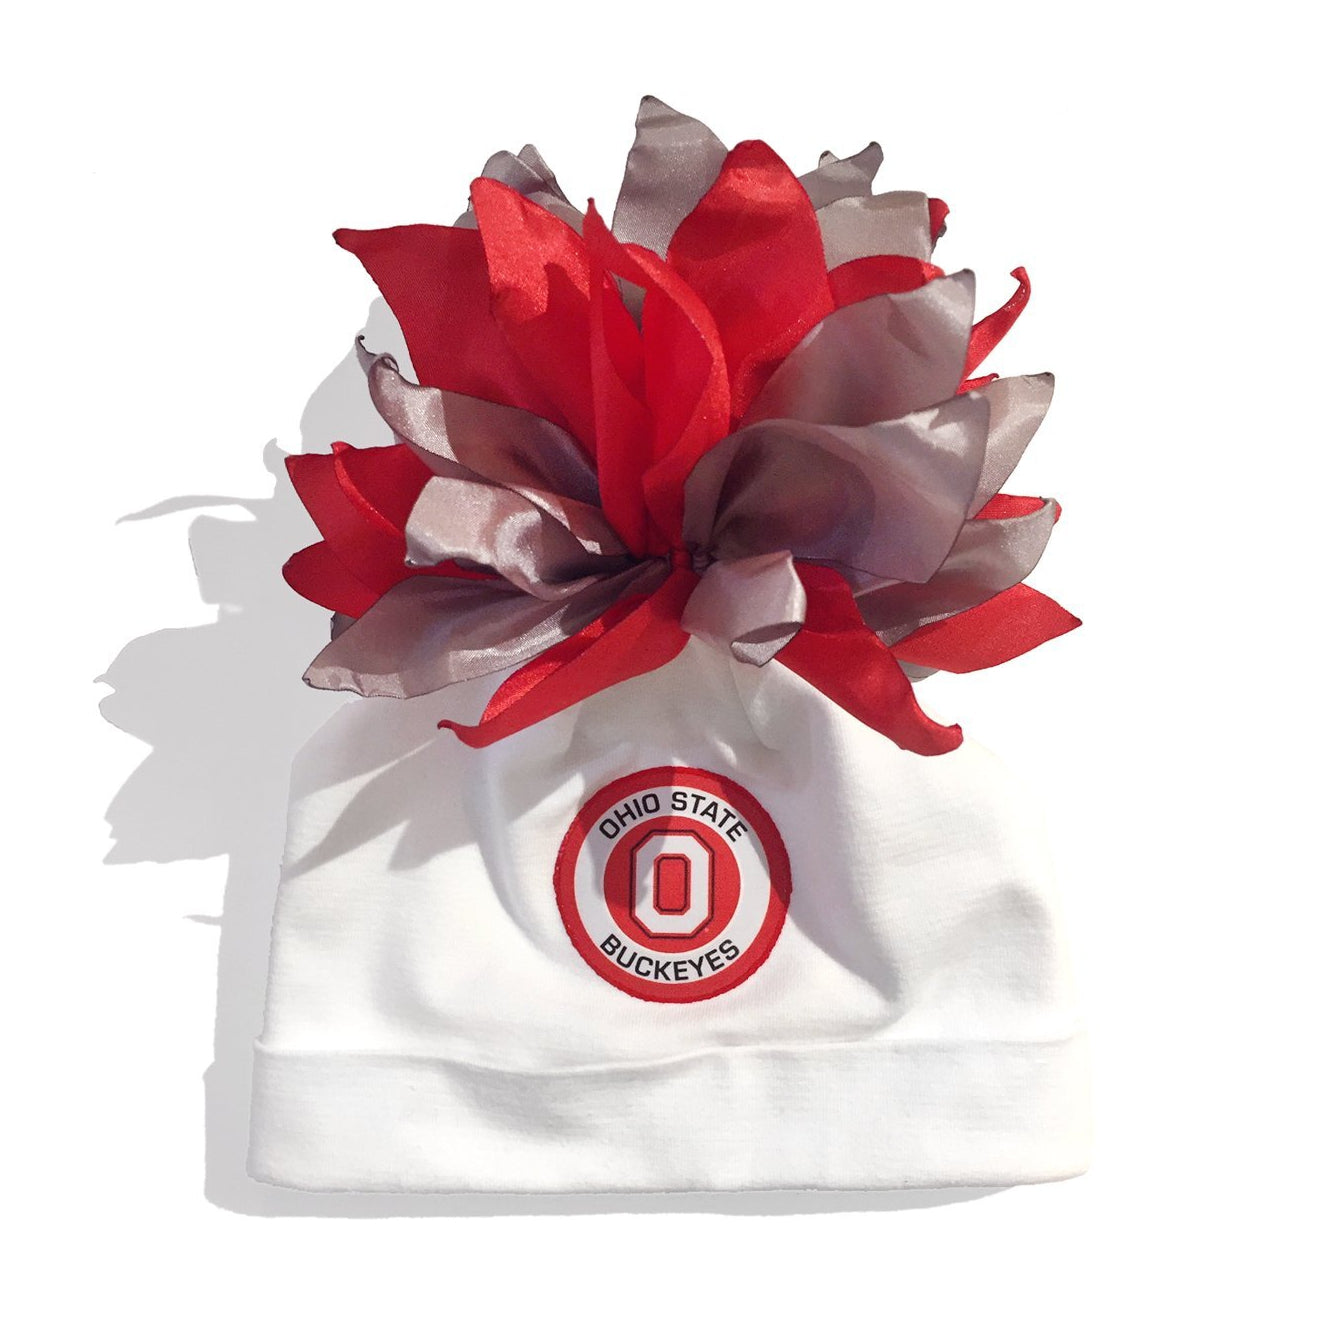 Ohio State University White Buckeyes Pom-Pom Hat